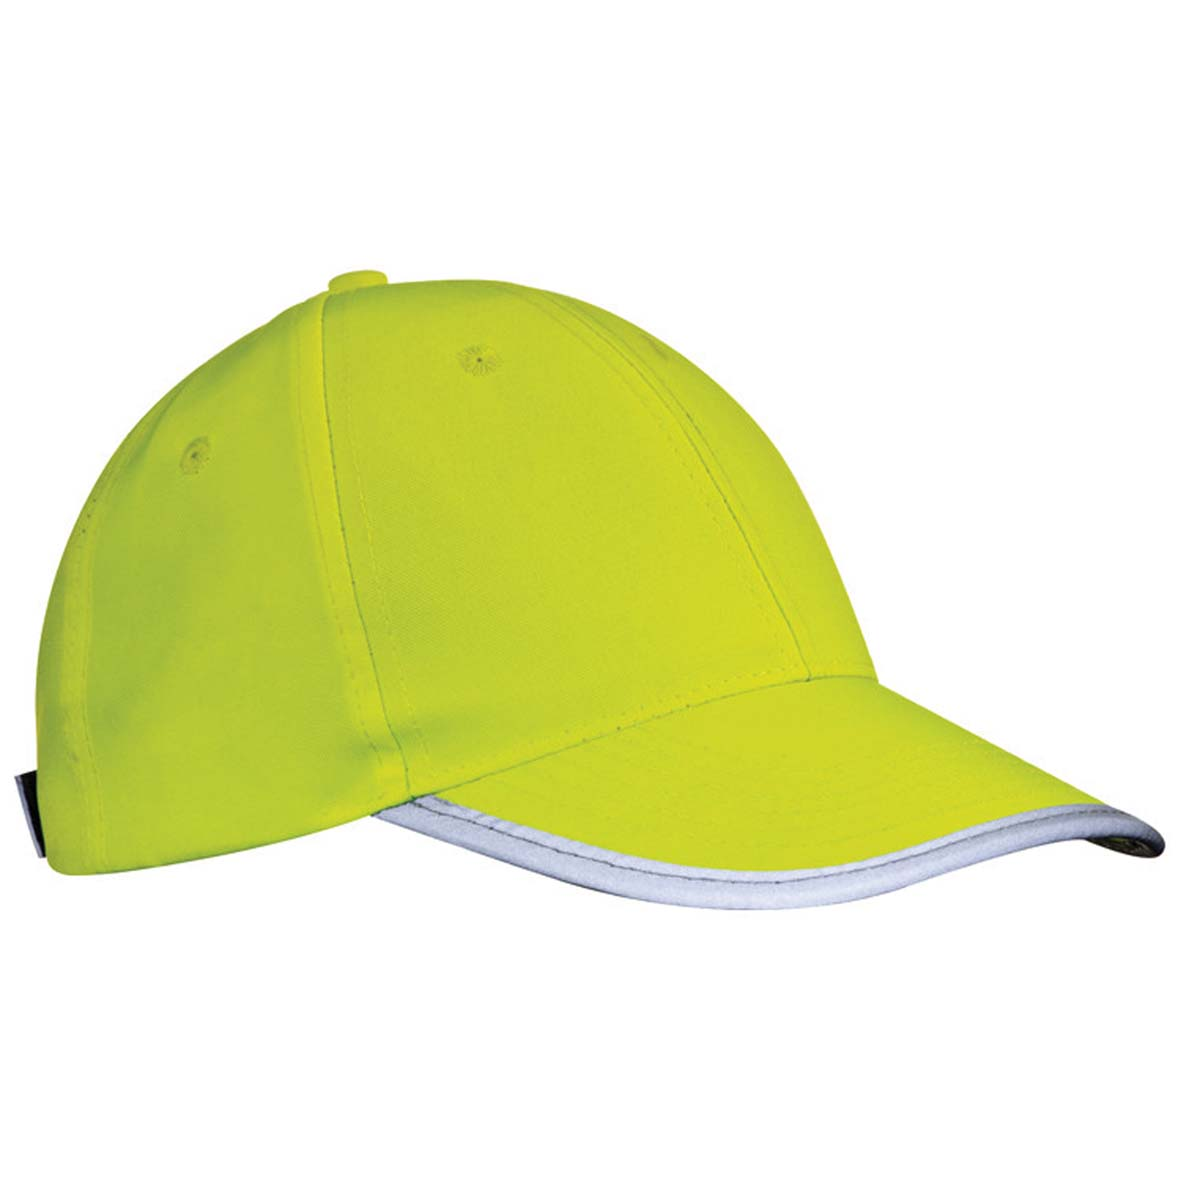 6-panel baseball cap made of polyester with reflecting edge mac-53397